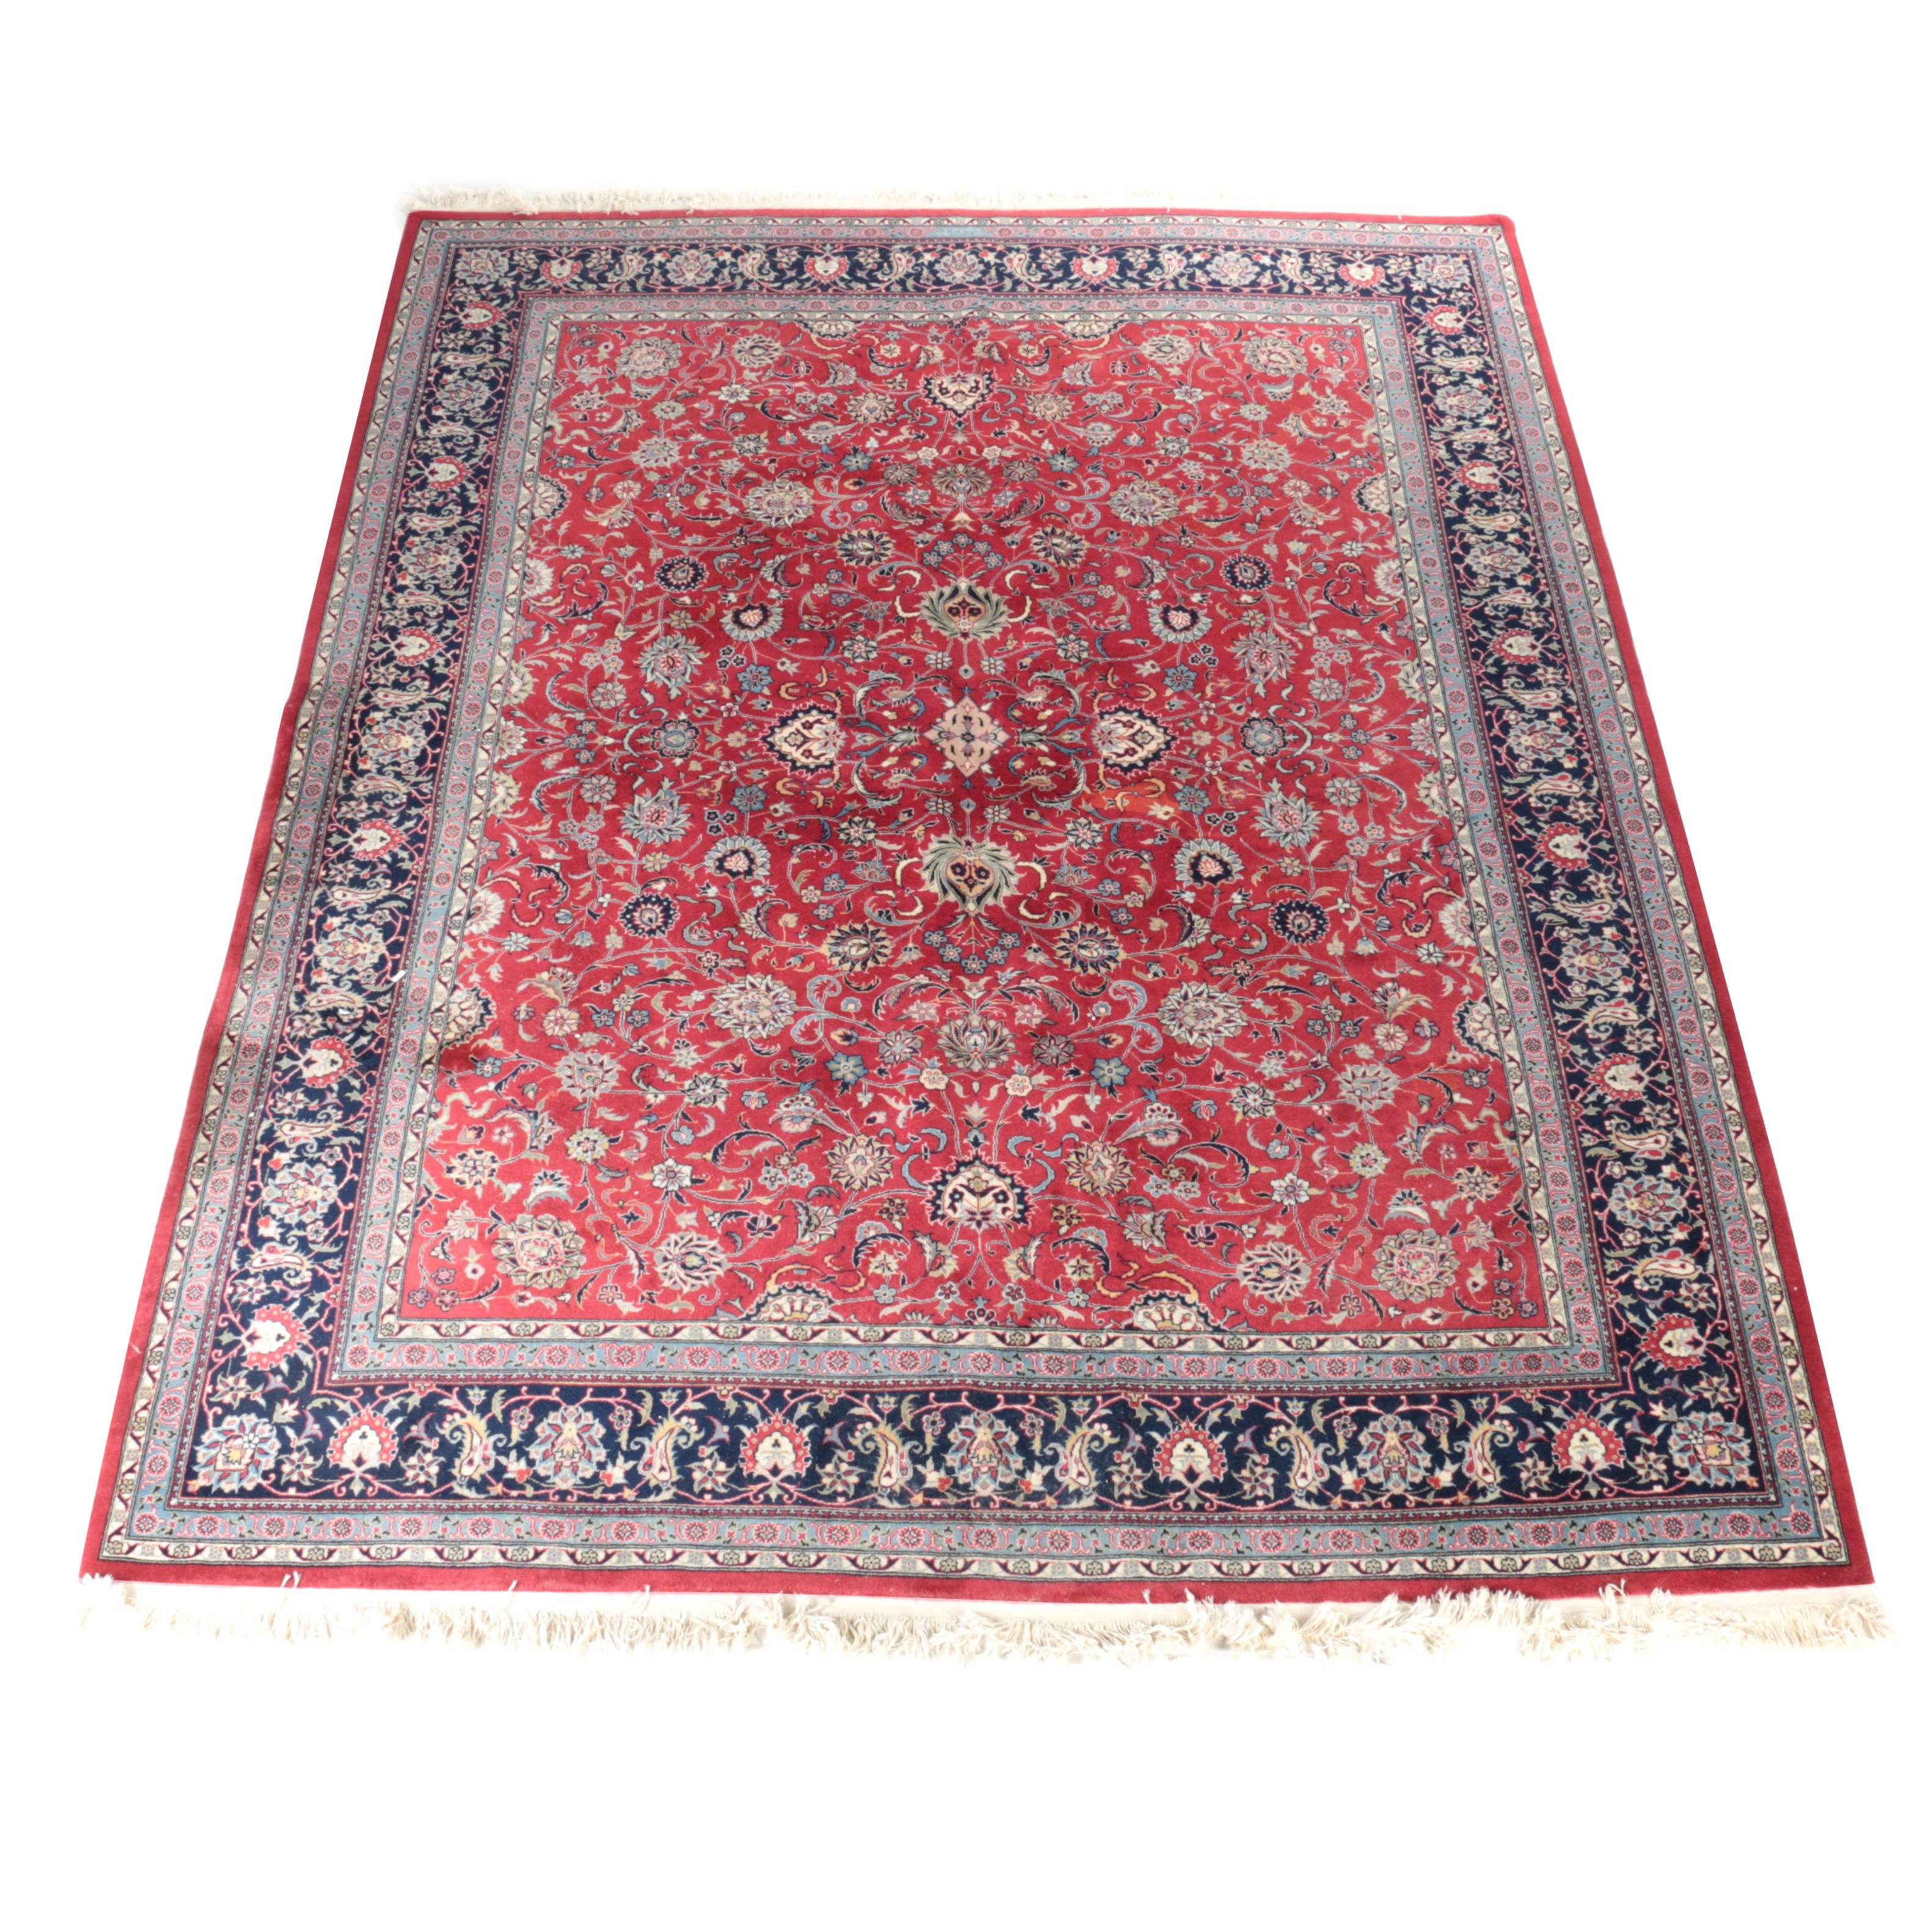 Hand-Knotted Persian Wool Herat Area Rug